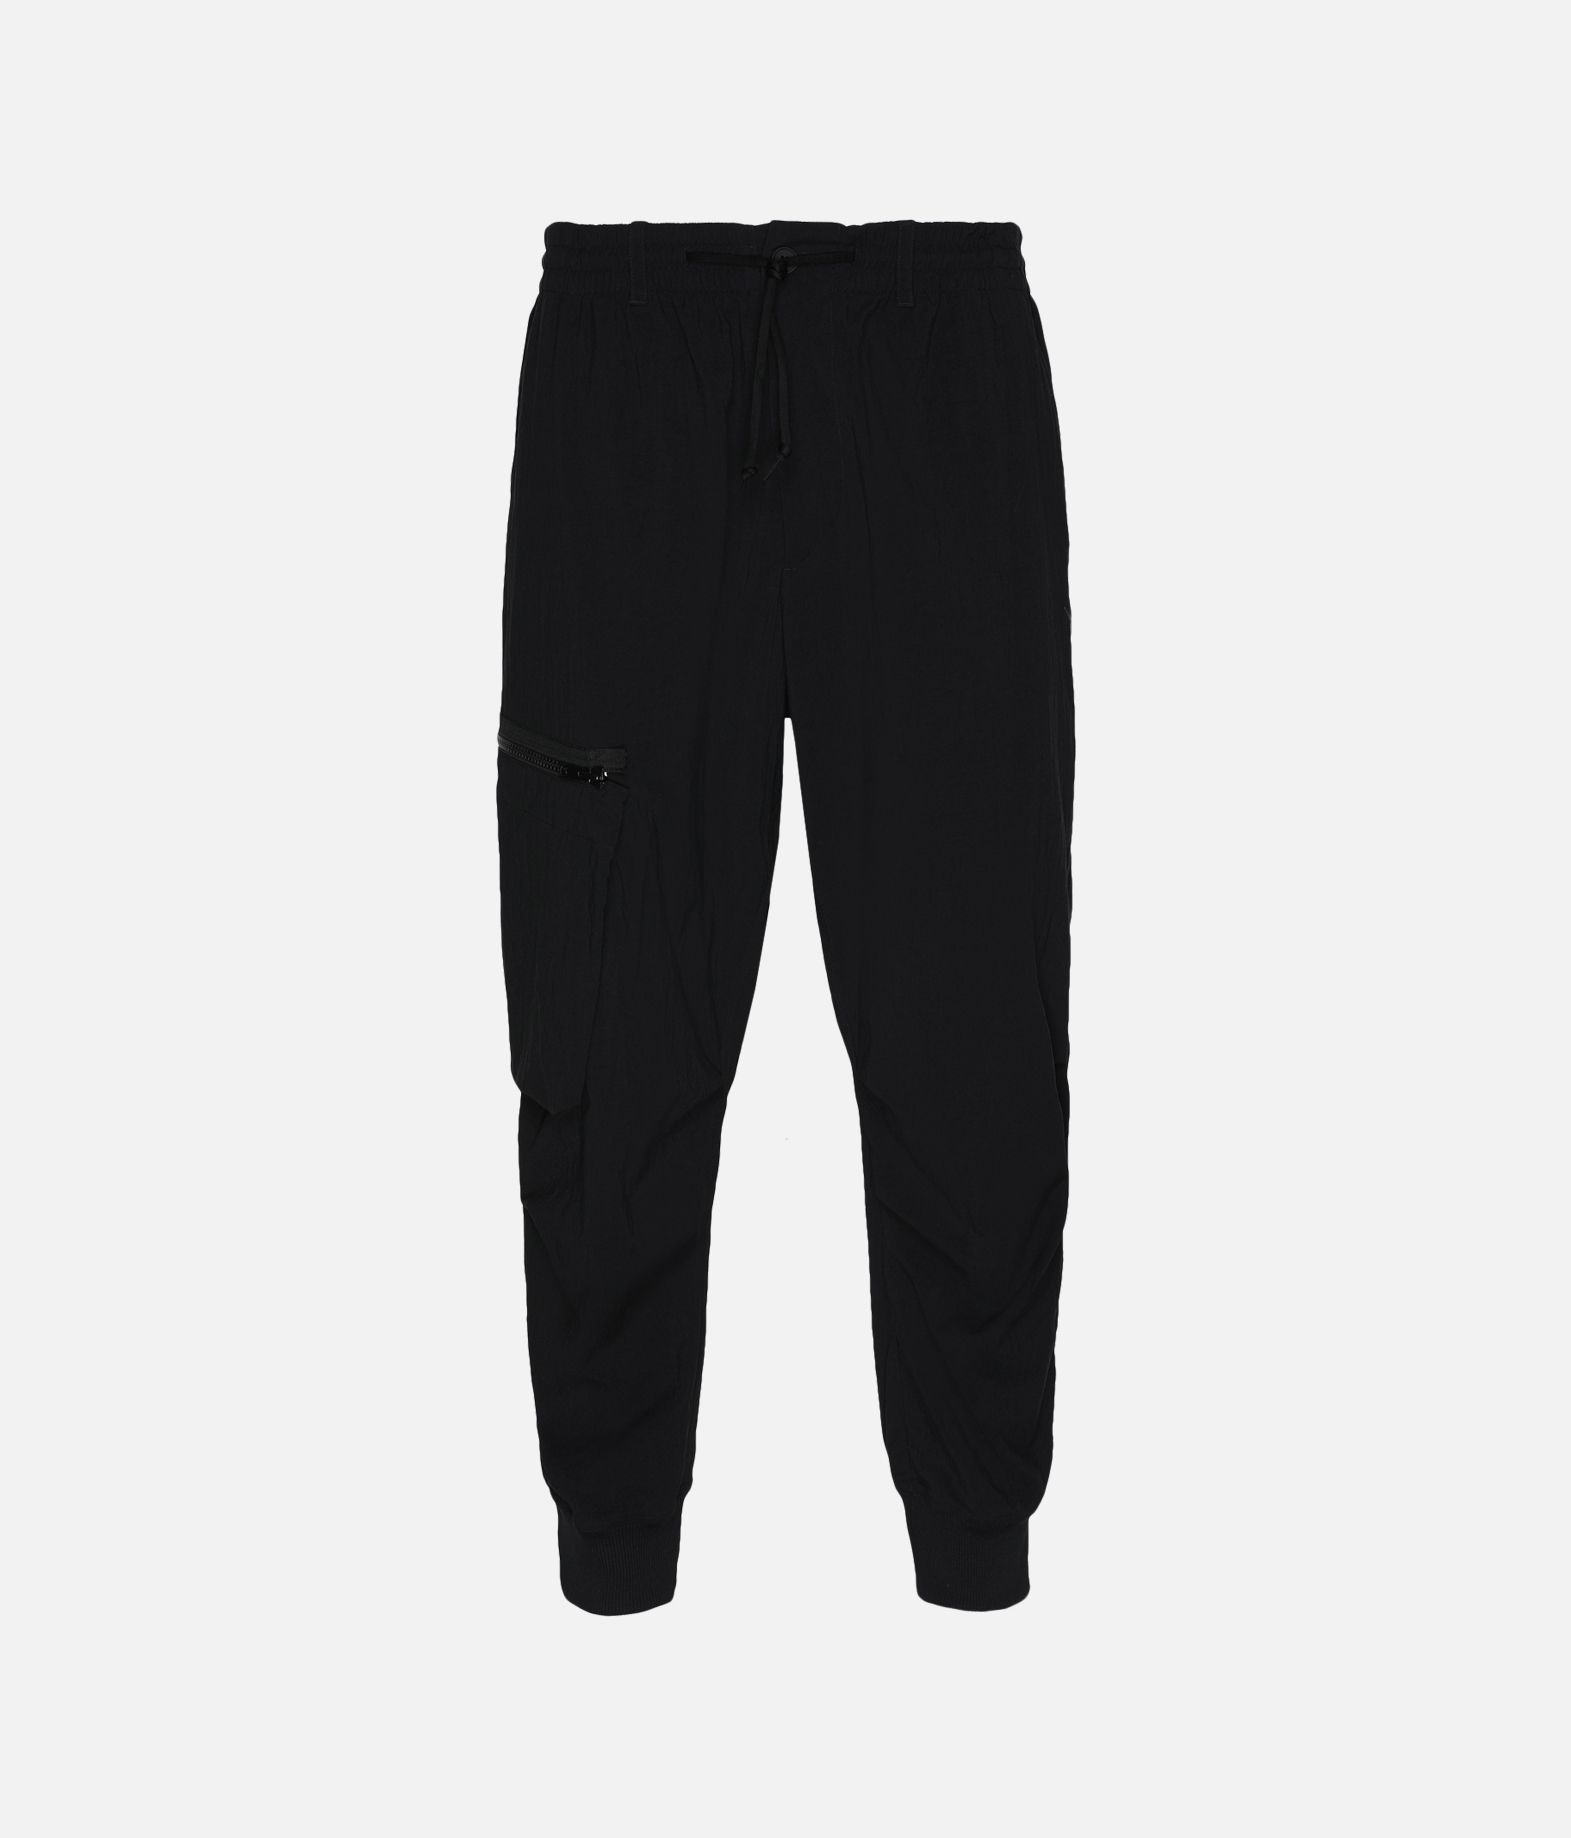 Y-3 Y-3 Cargo Pants Casual pants Man f